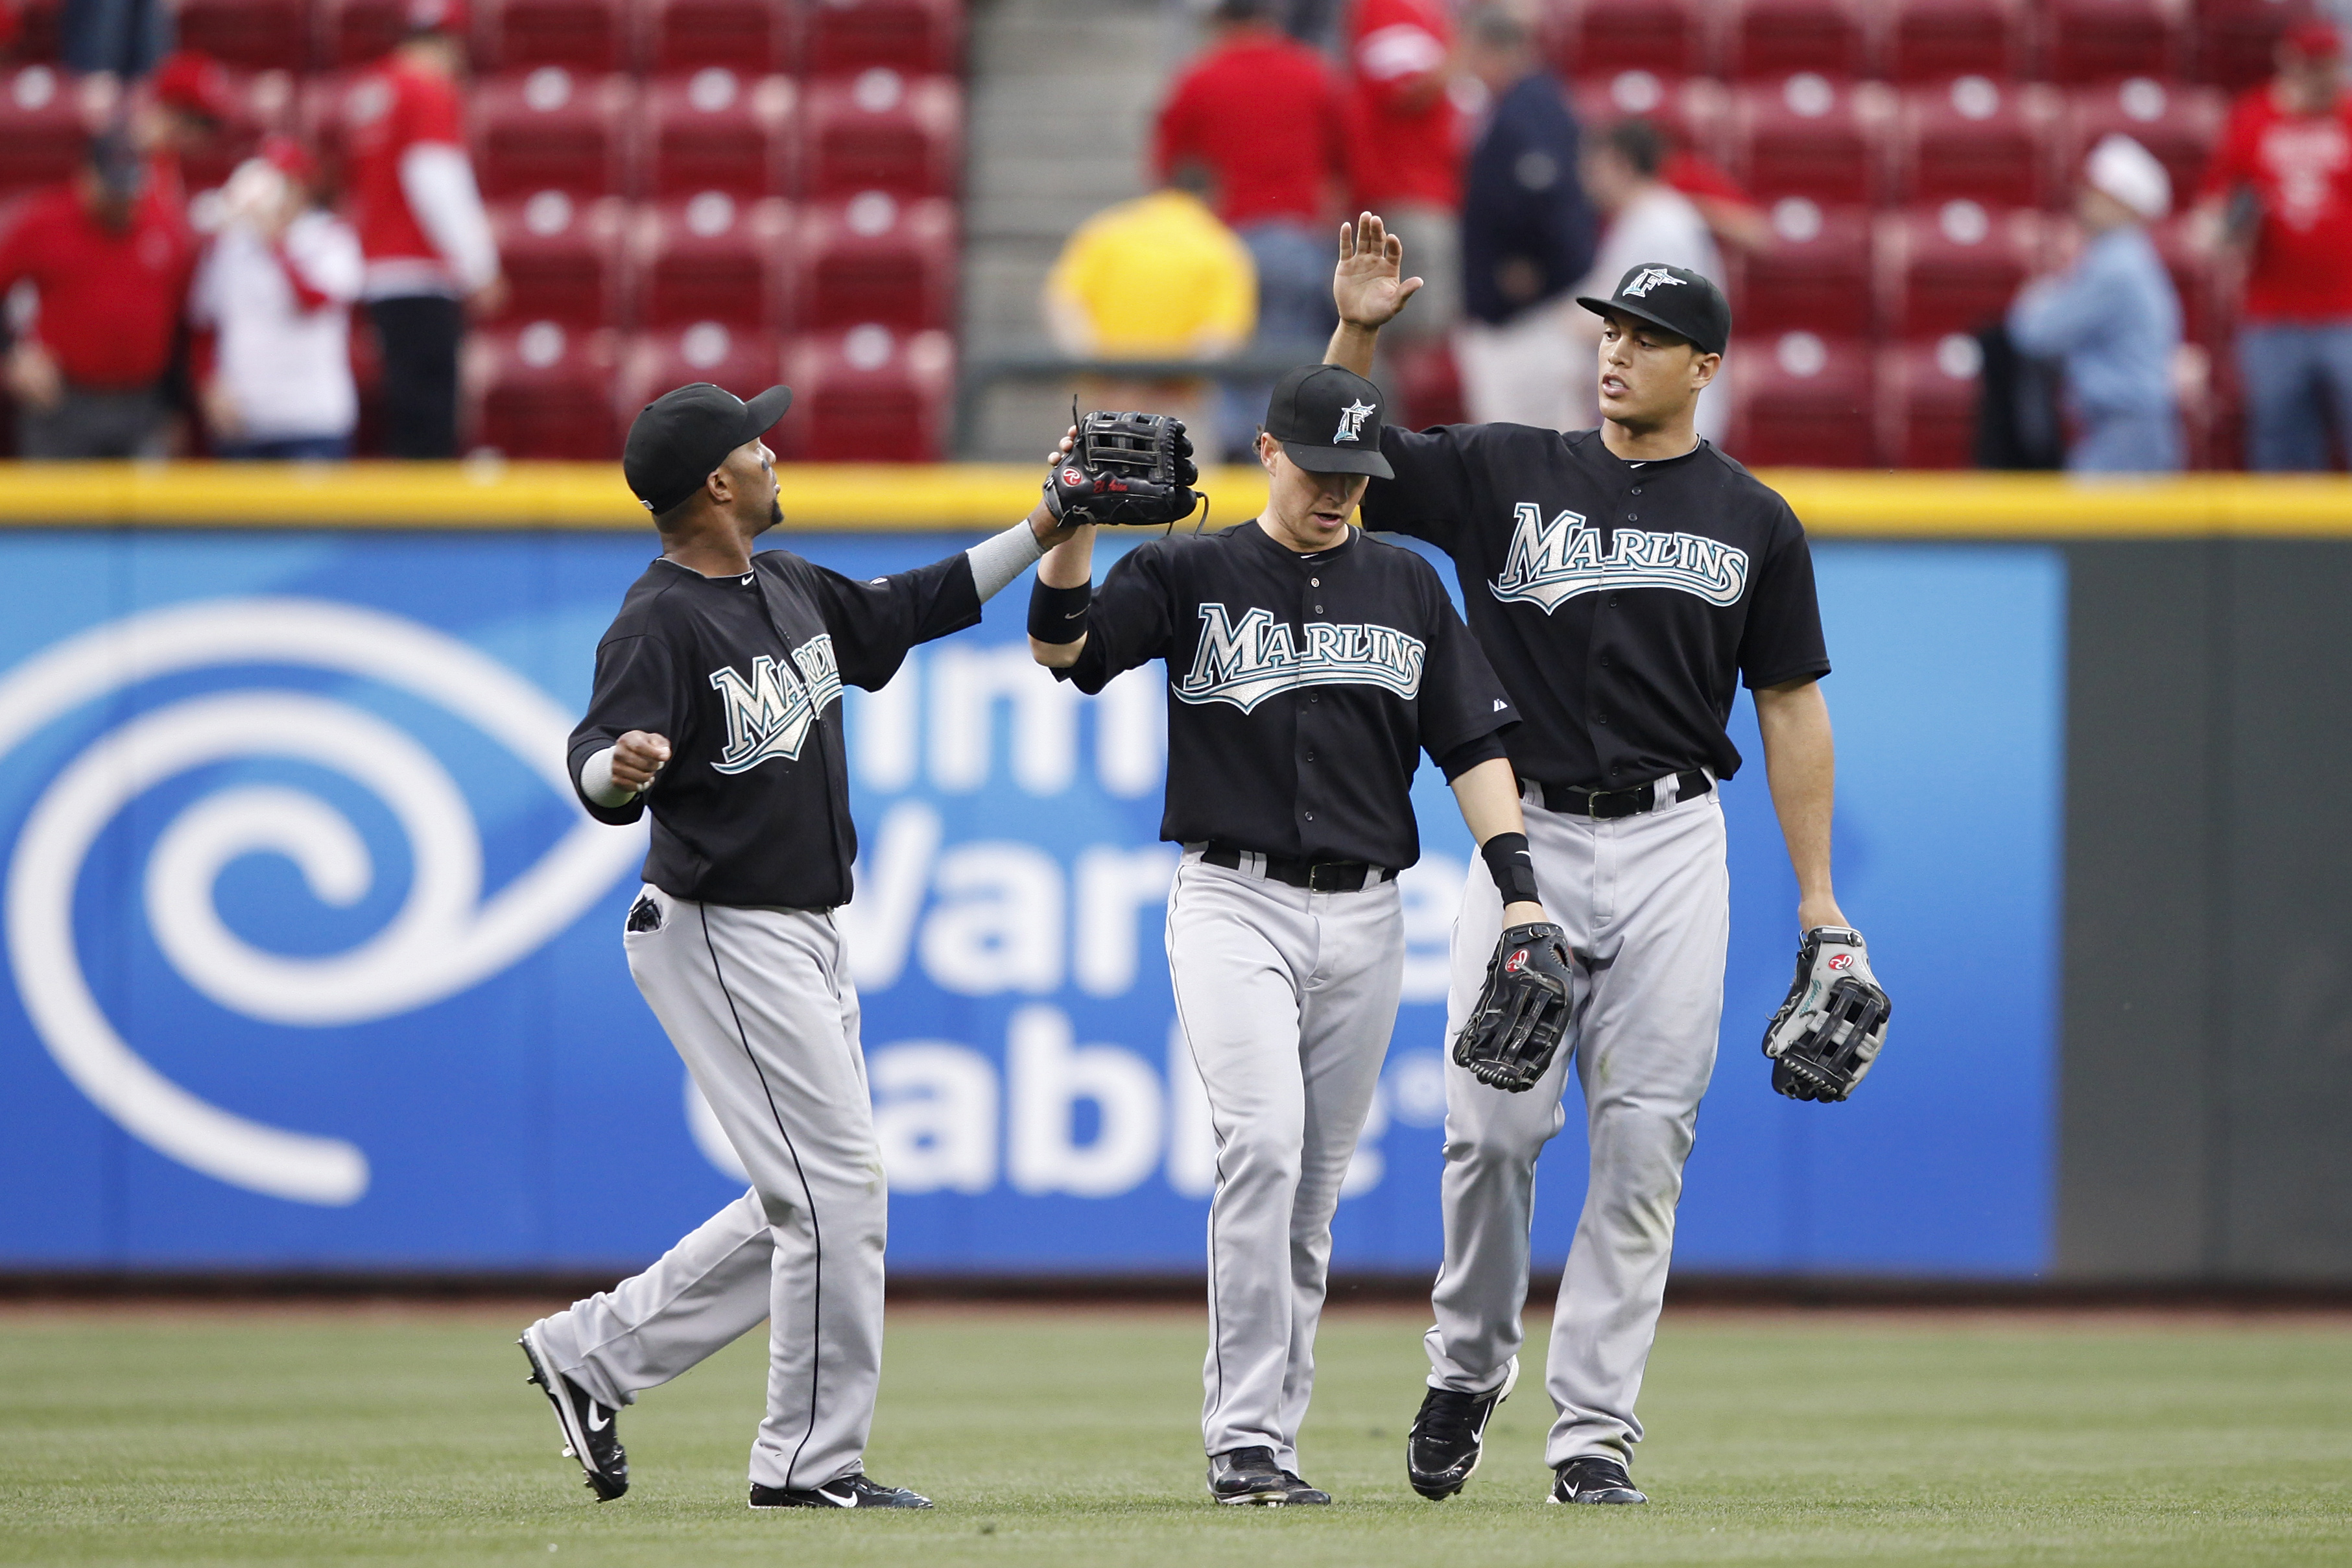 CINCINNATI, OH - MAY 1: Emilio Bonifacio #1, Chris Coghlan #8 and Mike Stanton #27 of the Florida Marlins celebrate after the final out against the Cincinnati Reds at Great American Ball Park on May 1, 2011 in Cincinnati, Ohio. The Marlins defeated the Re